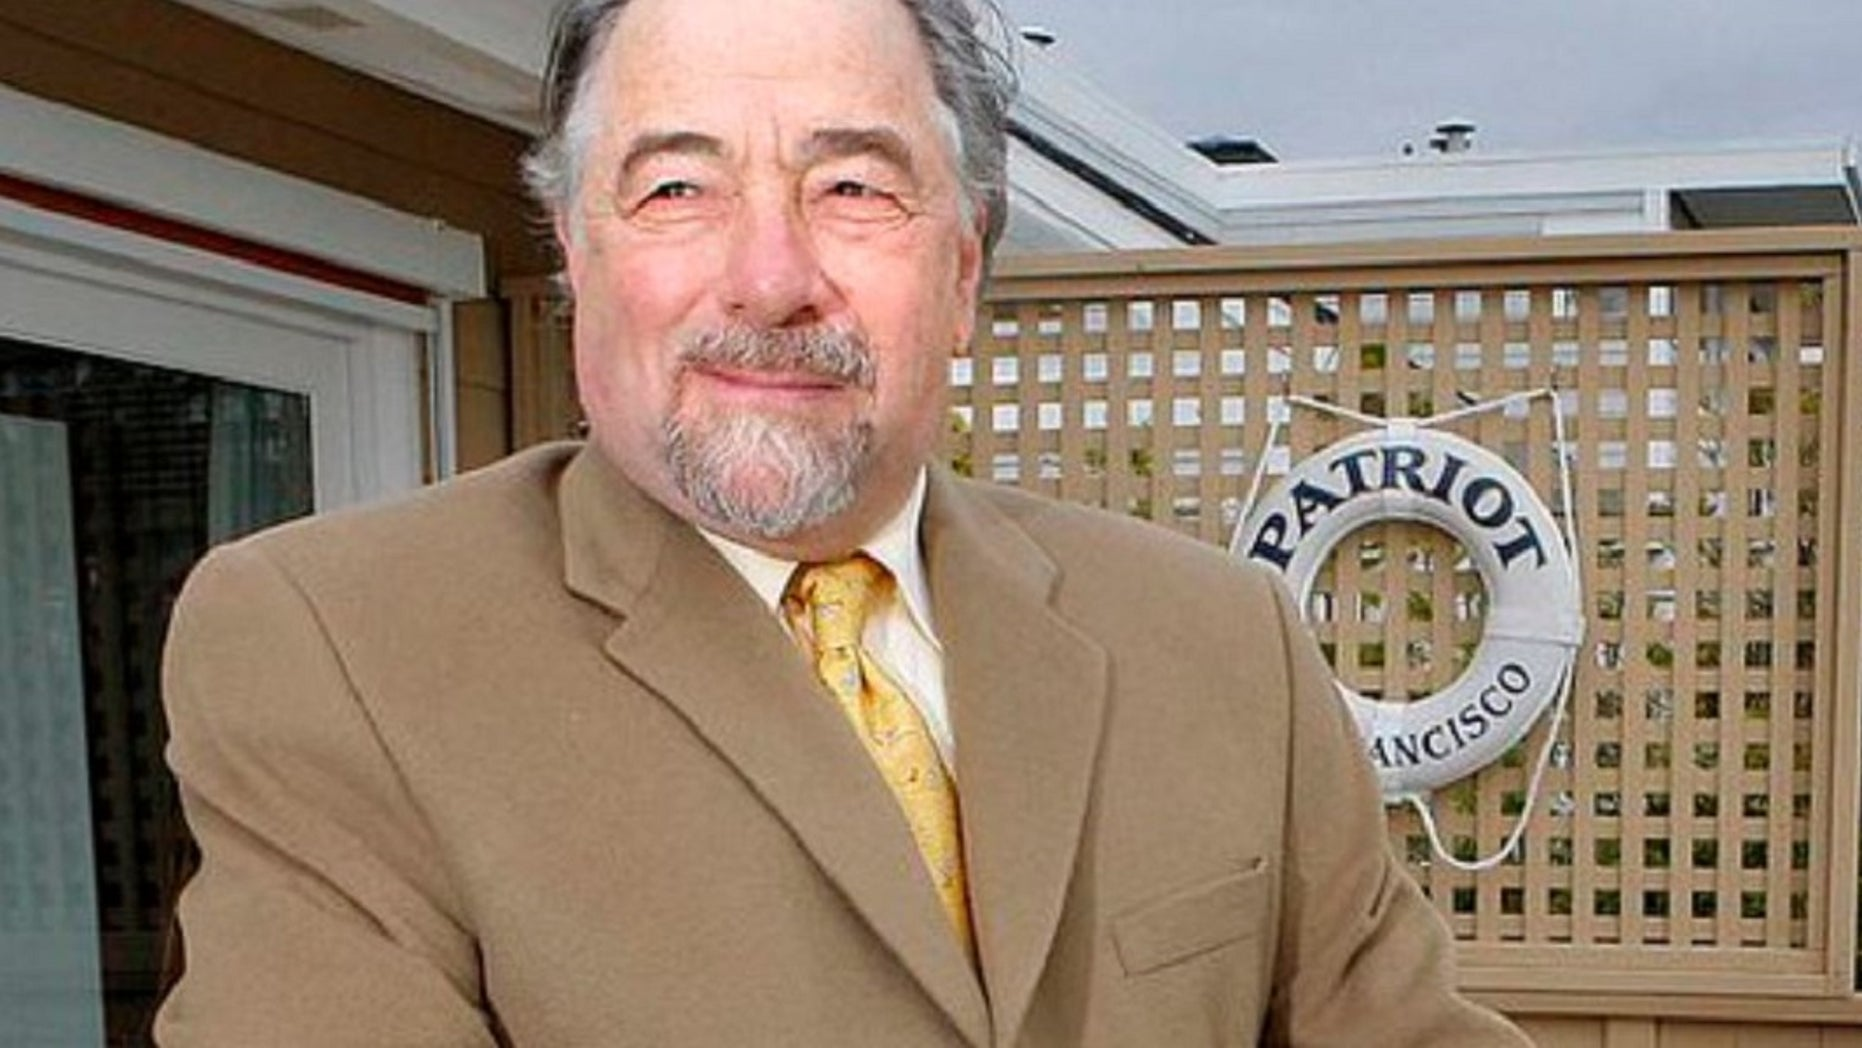 The severity of threatening emails against radio talk show host Michael Savage has prompted the involvement of several law enforcement agencies.